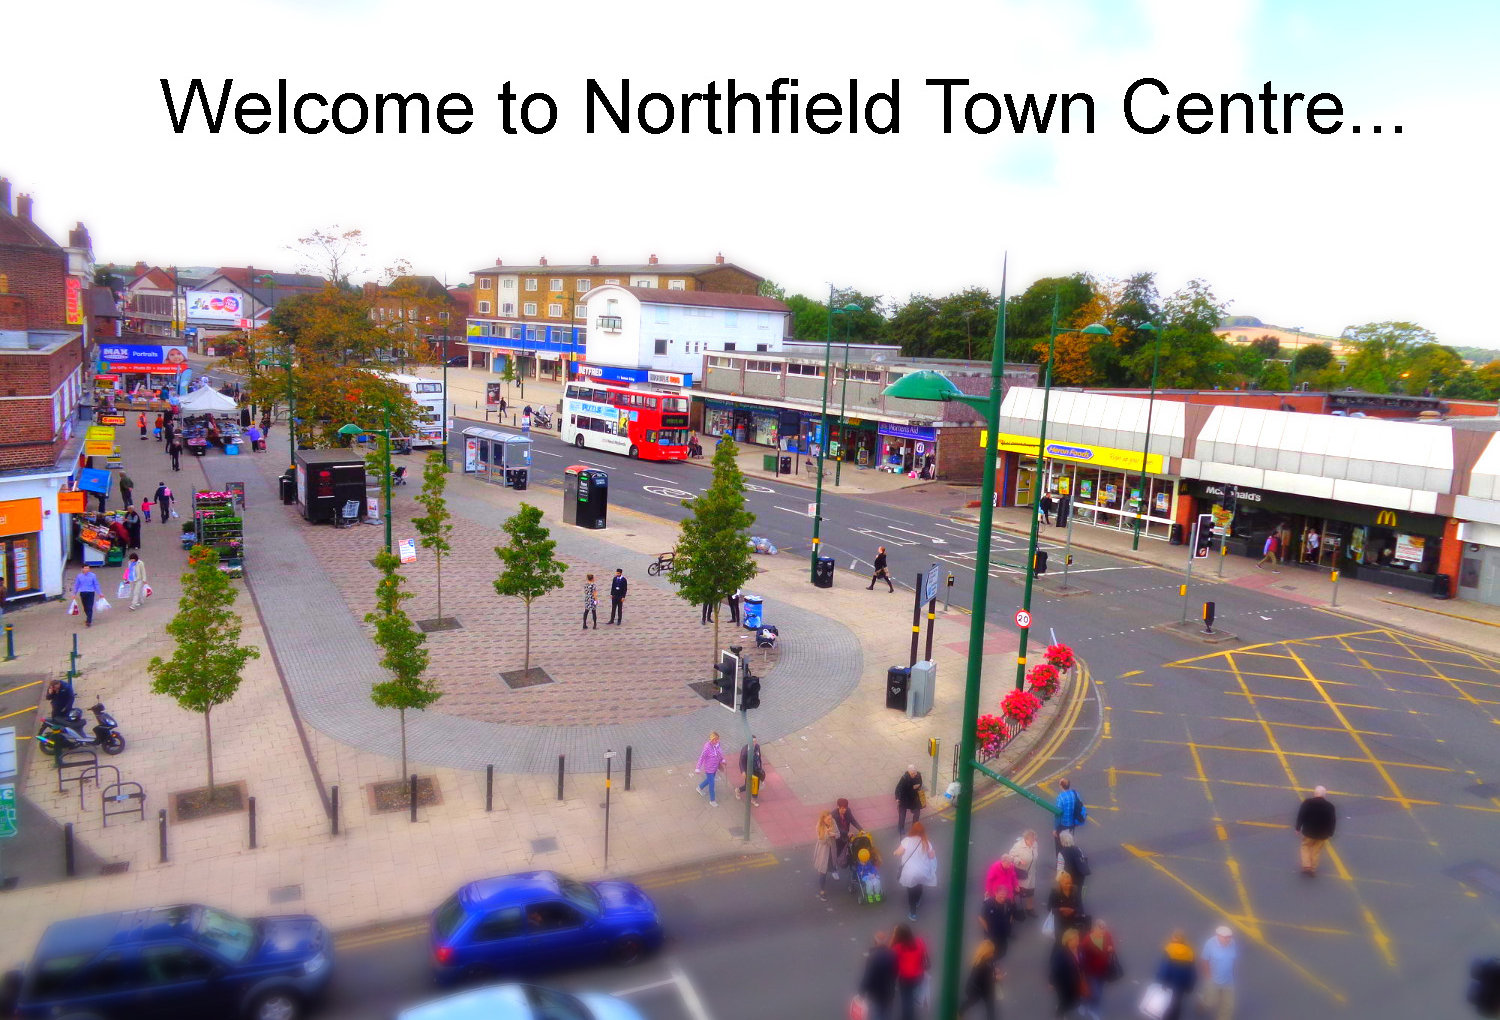 Northfield Town Centre